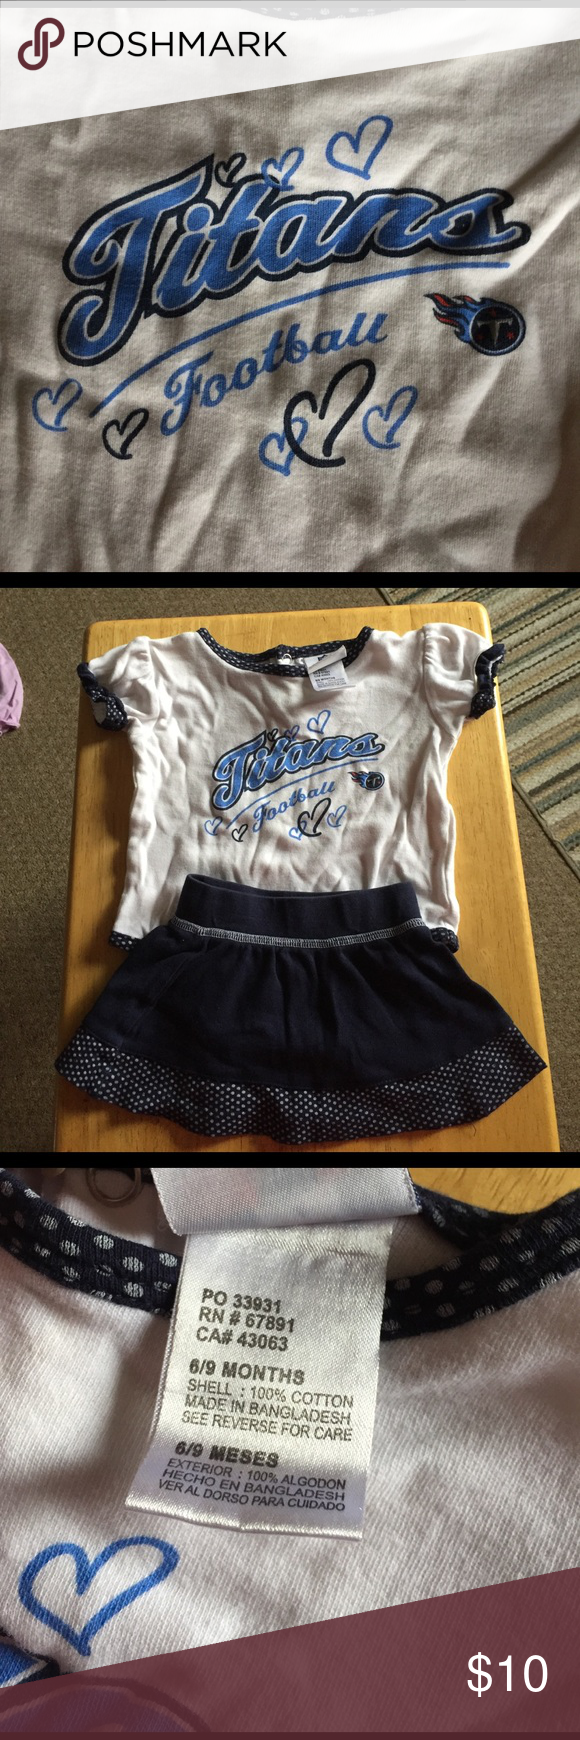 0fdc6c30 Tennessee Titans Cheerleader! EUC. No rips or stains. NFL Team ...